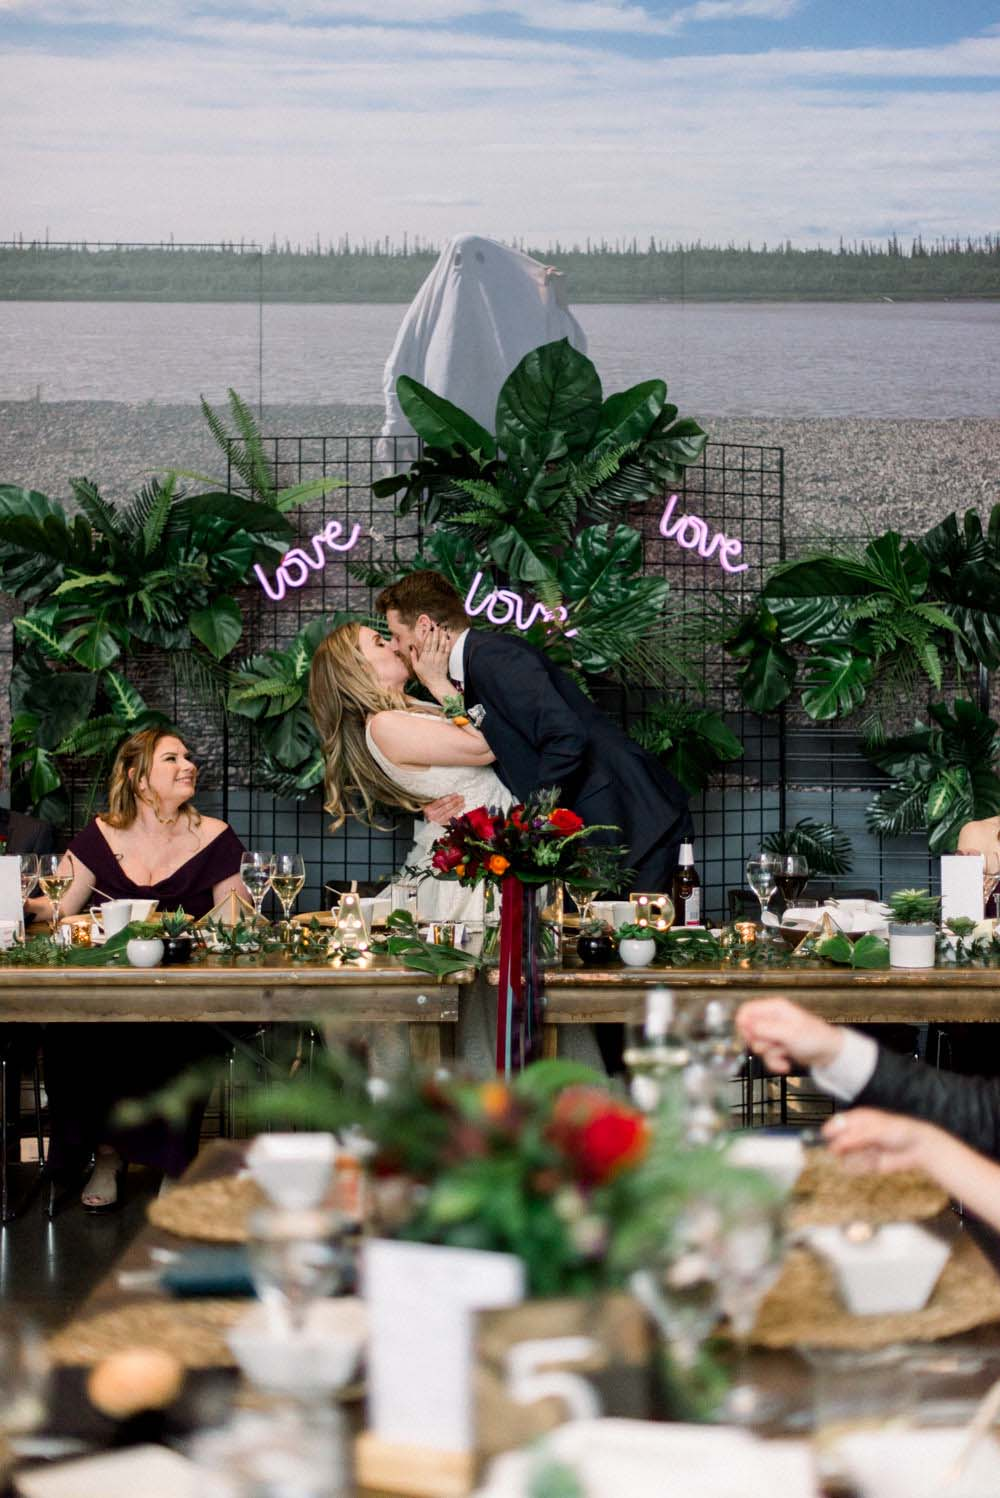 A Modern, Tropical Wedding with a Touch of Glam in Edmonton